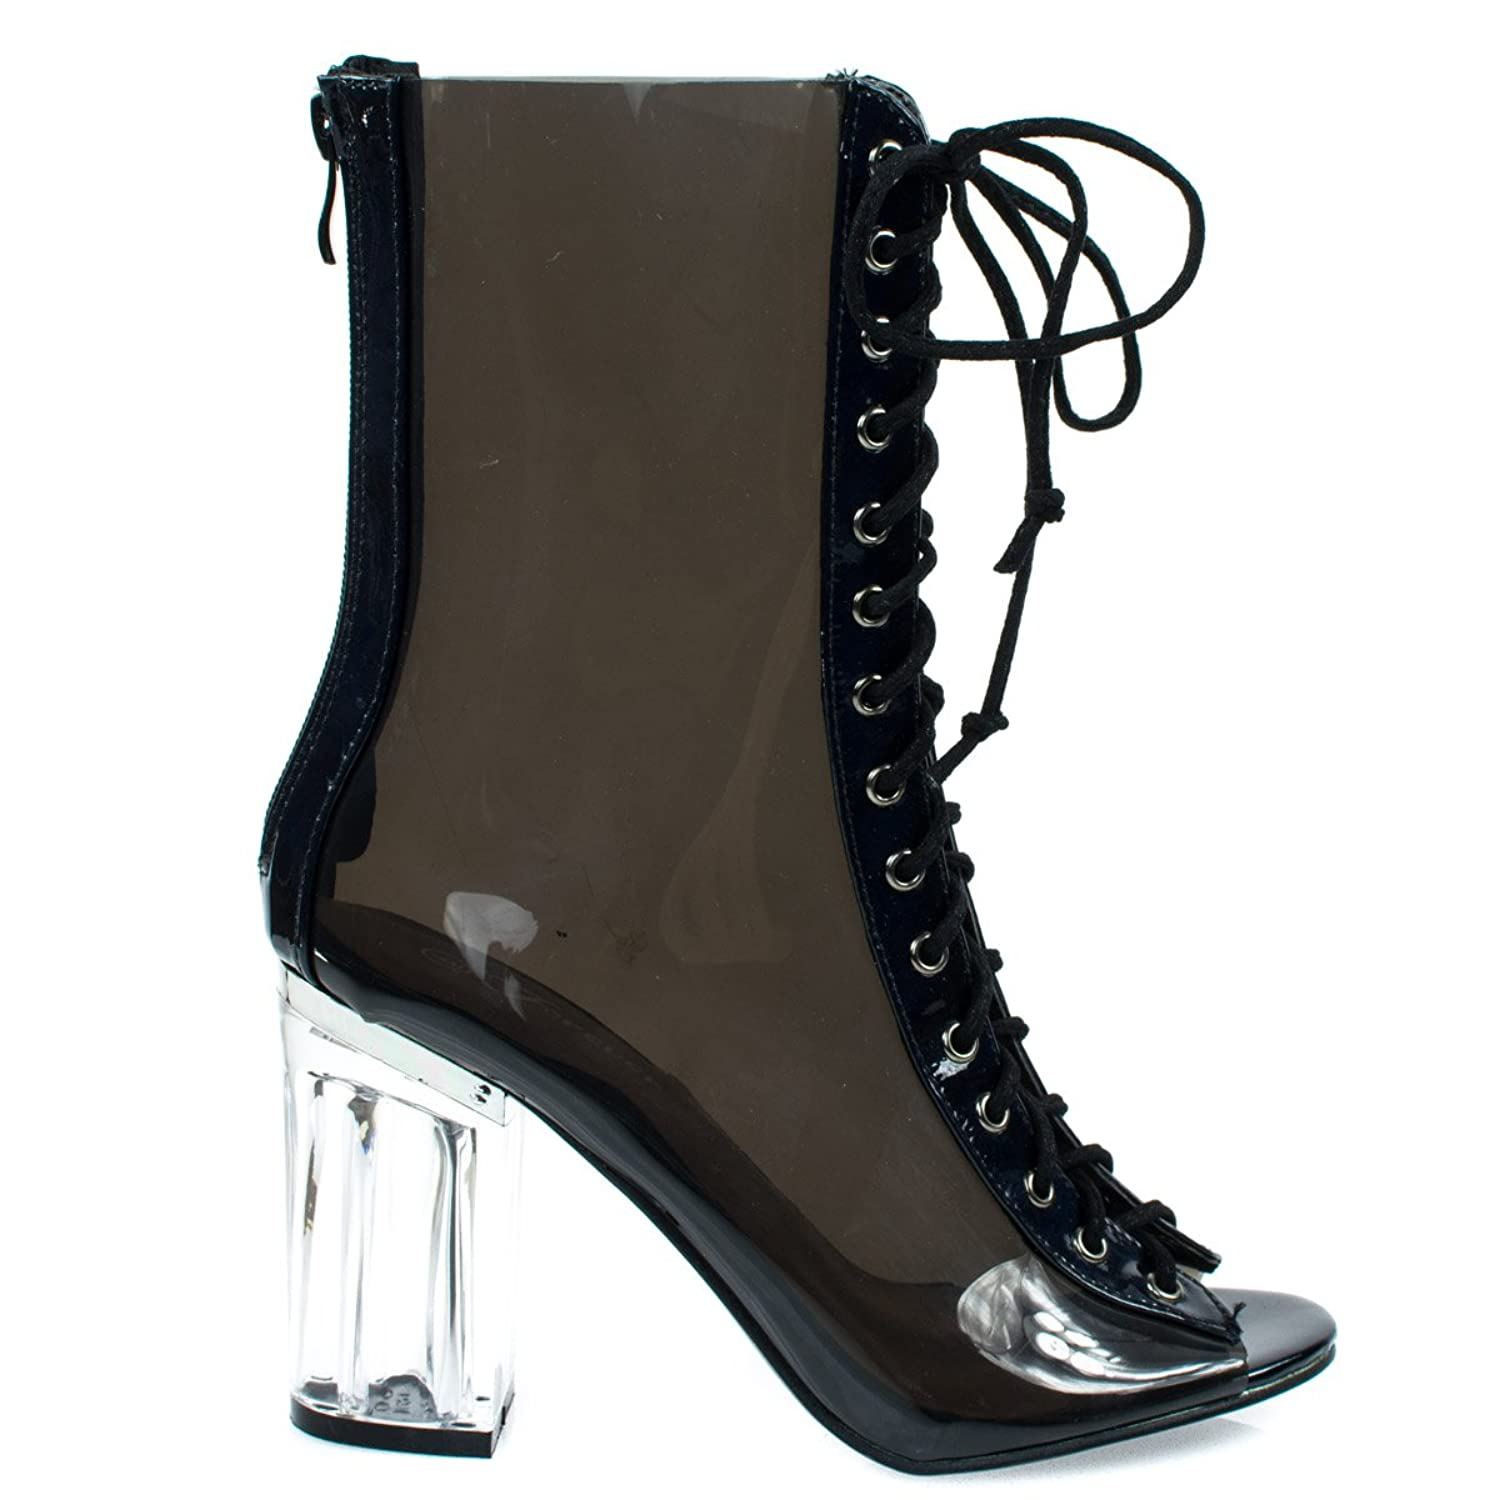 Above Ankle Clear Peep Toe Lace Up Boots & Perspex Plexiglas Block Heel